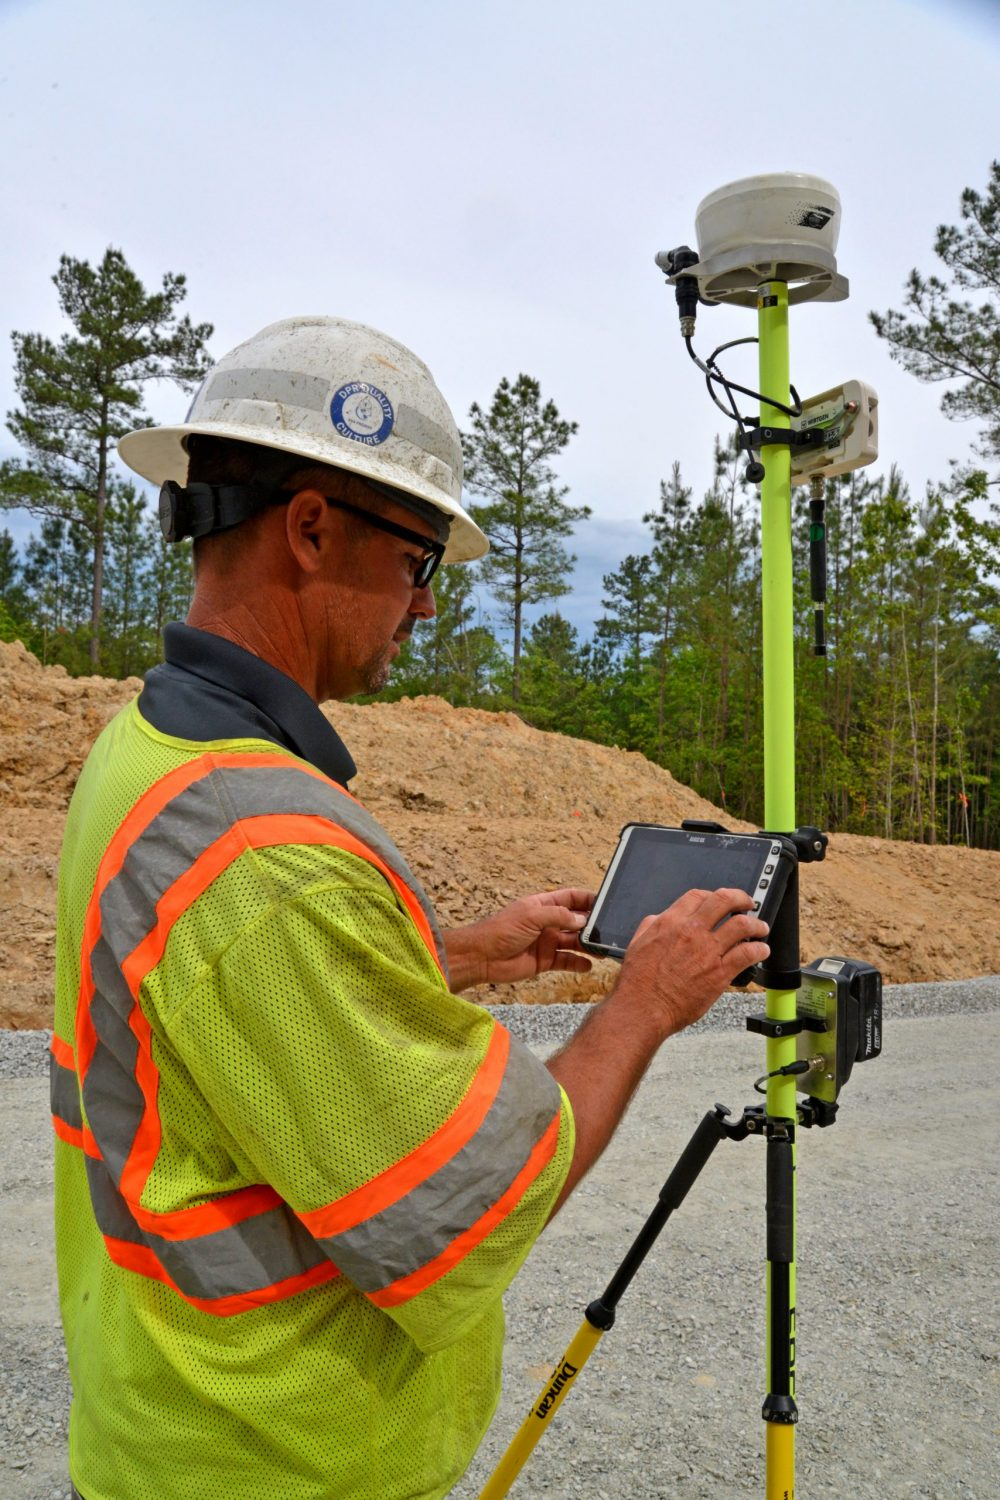 Clay Armstrong confirms data points on the Wirtgen AutoPilot 2.0 portable tablet attached to the Field Rover survey pole.